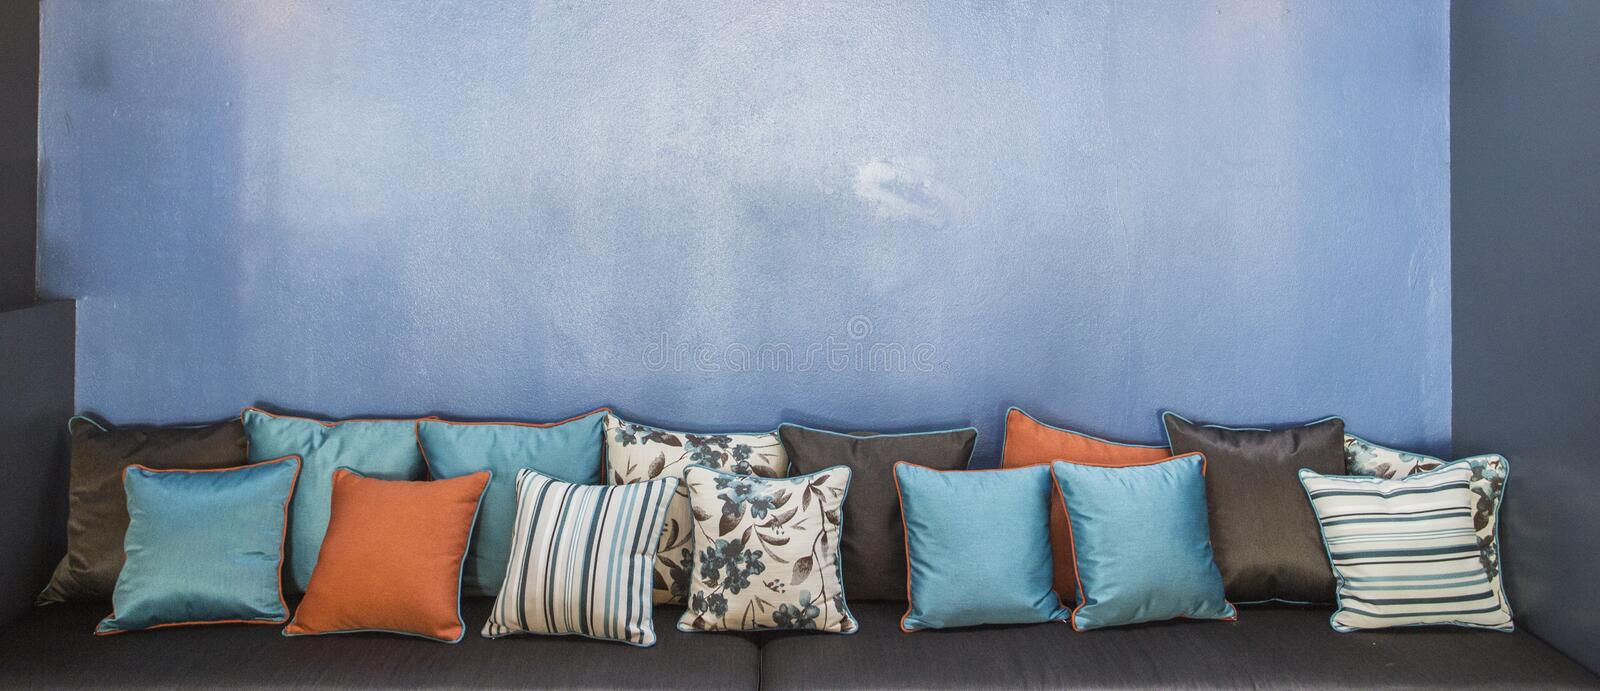 Vintage retro living room with pillows royalty free stock photography